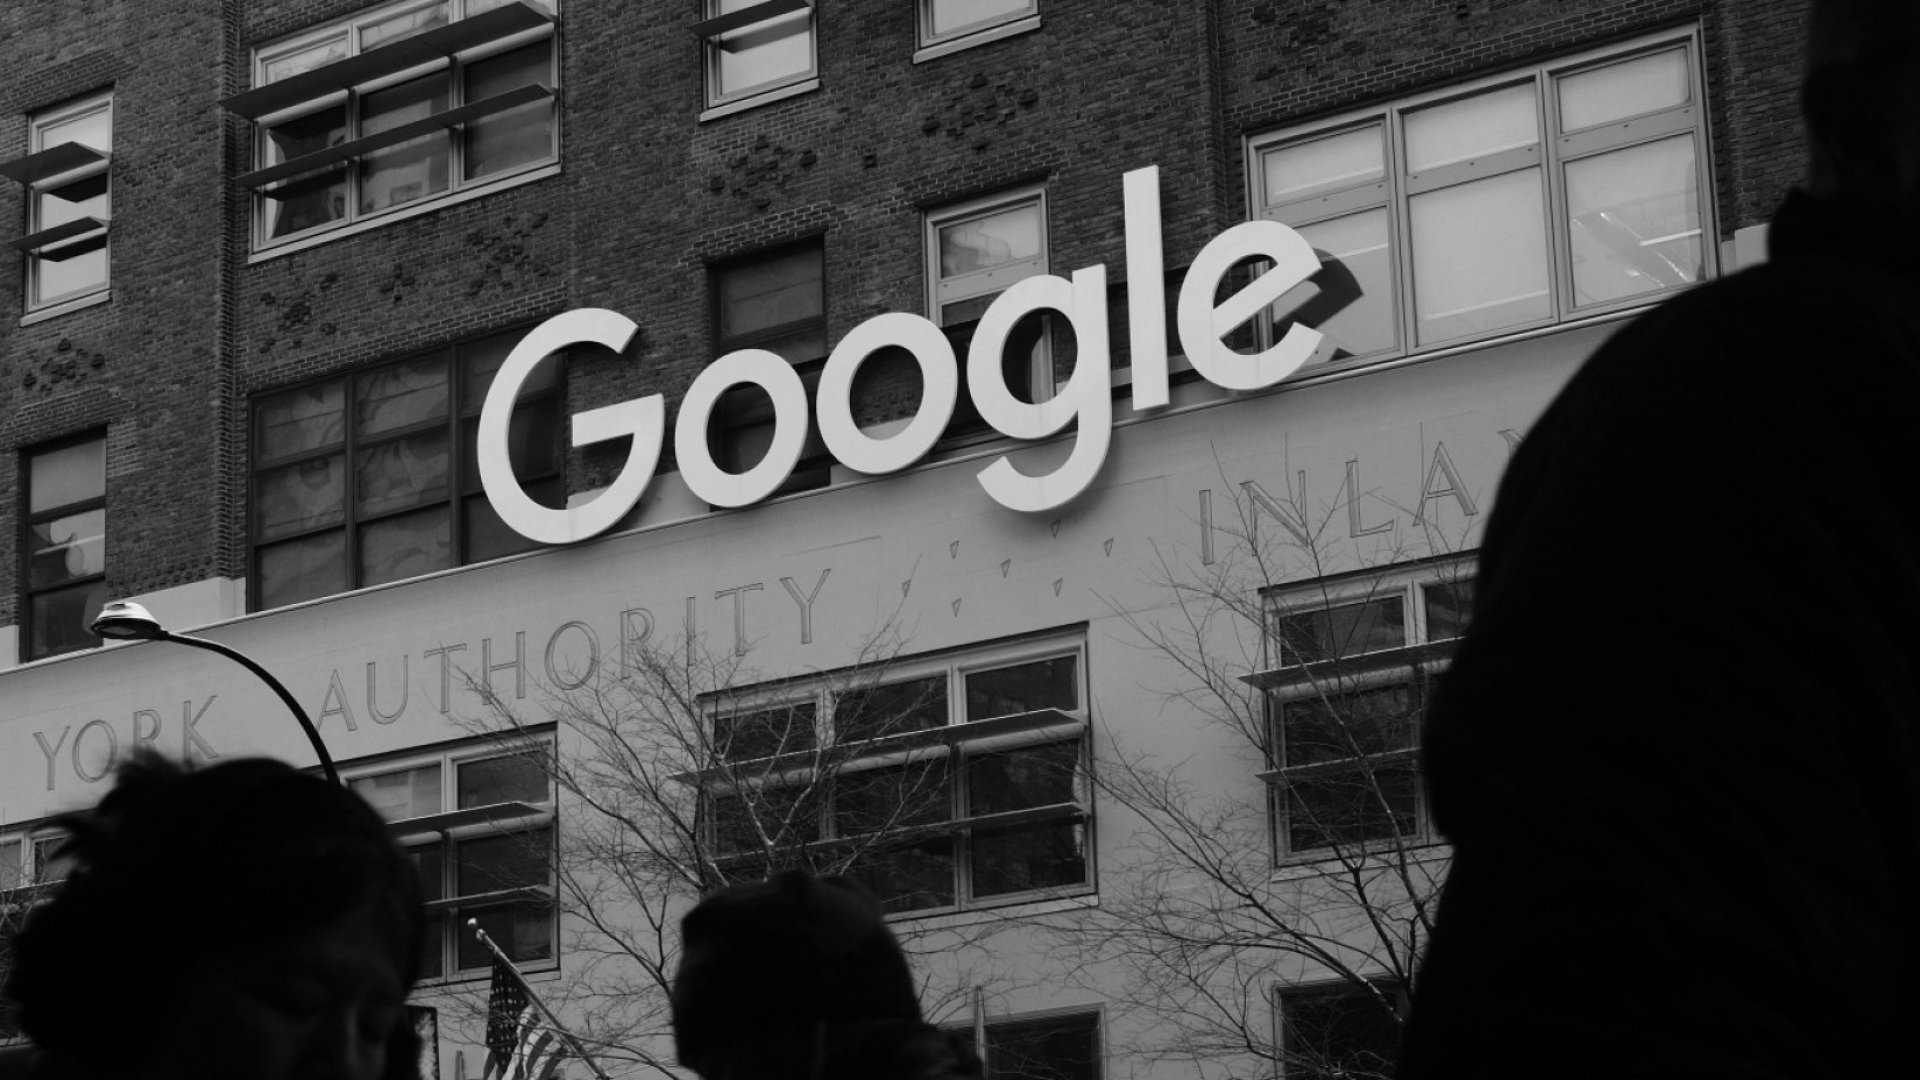 Google Accused of 'Shocking Activities' in New Class Action Suit by Fired Employee